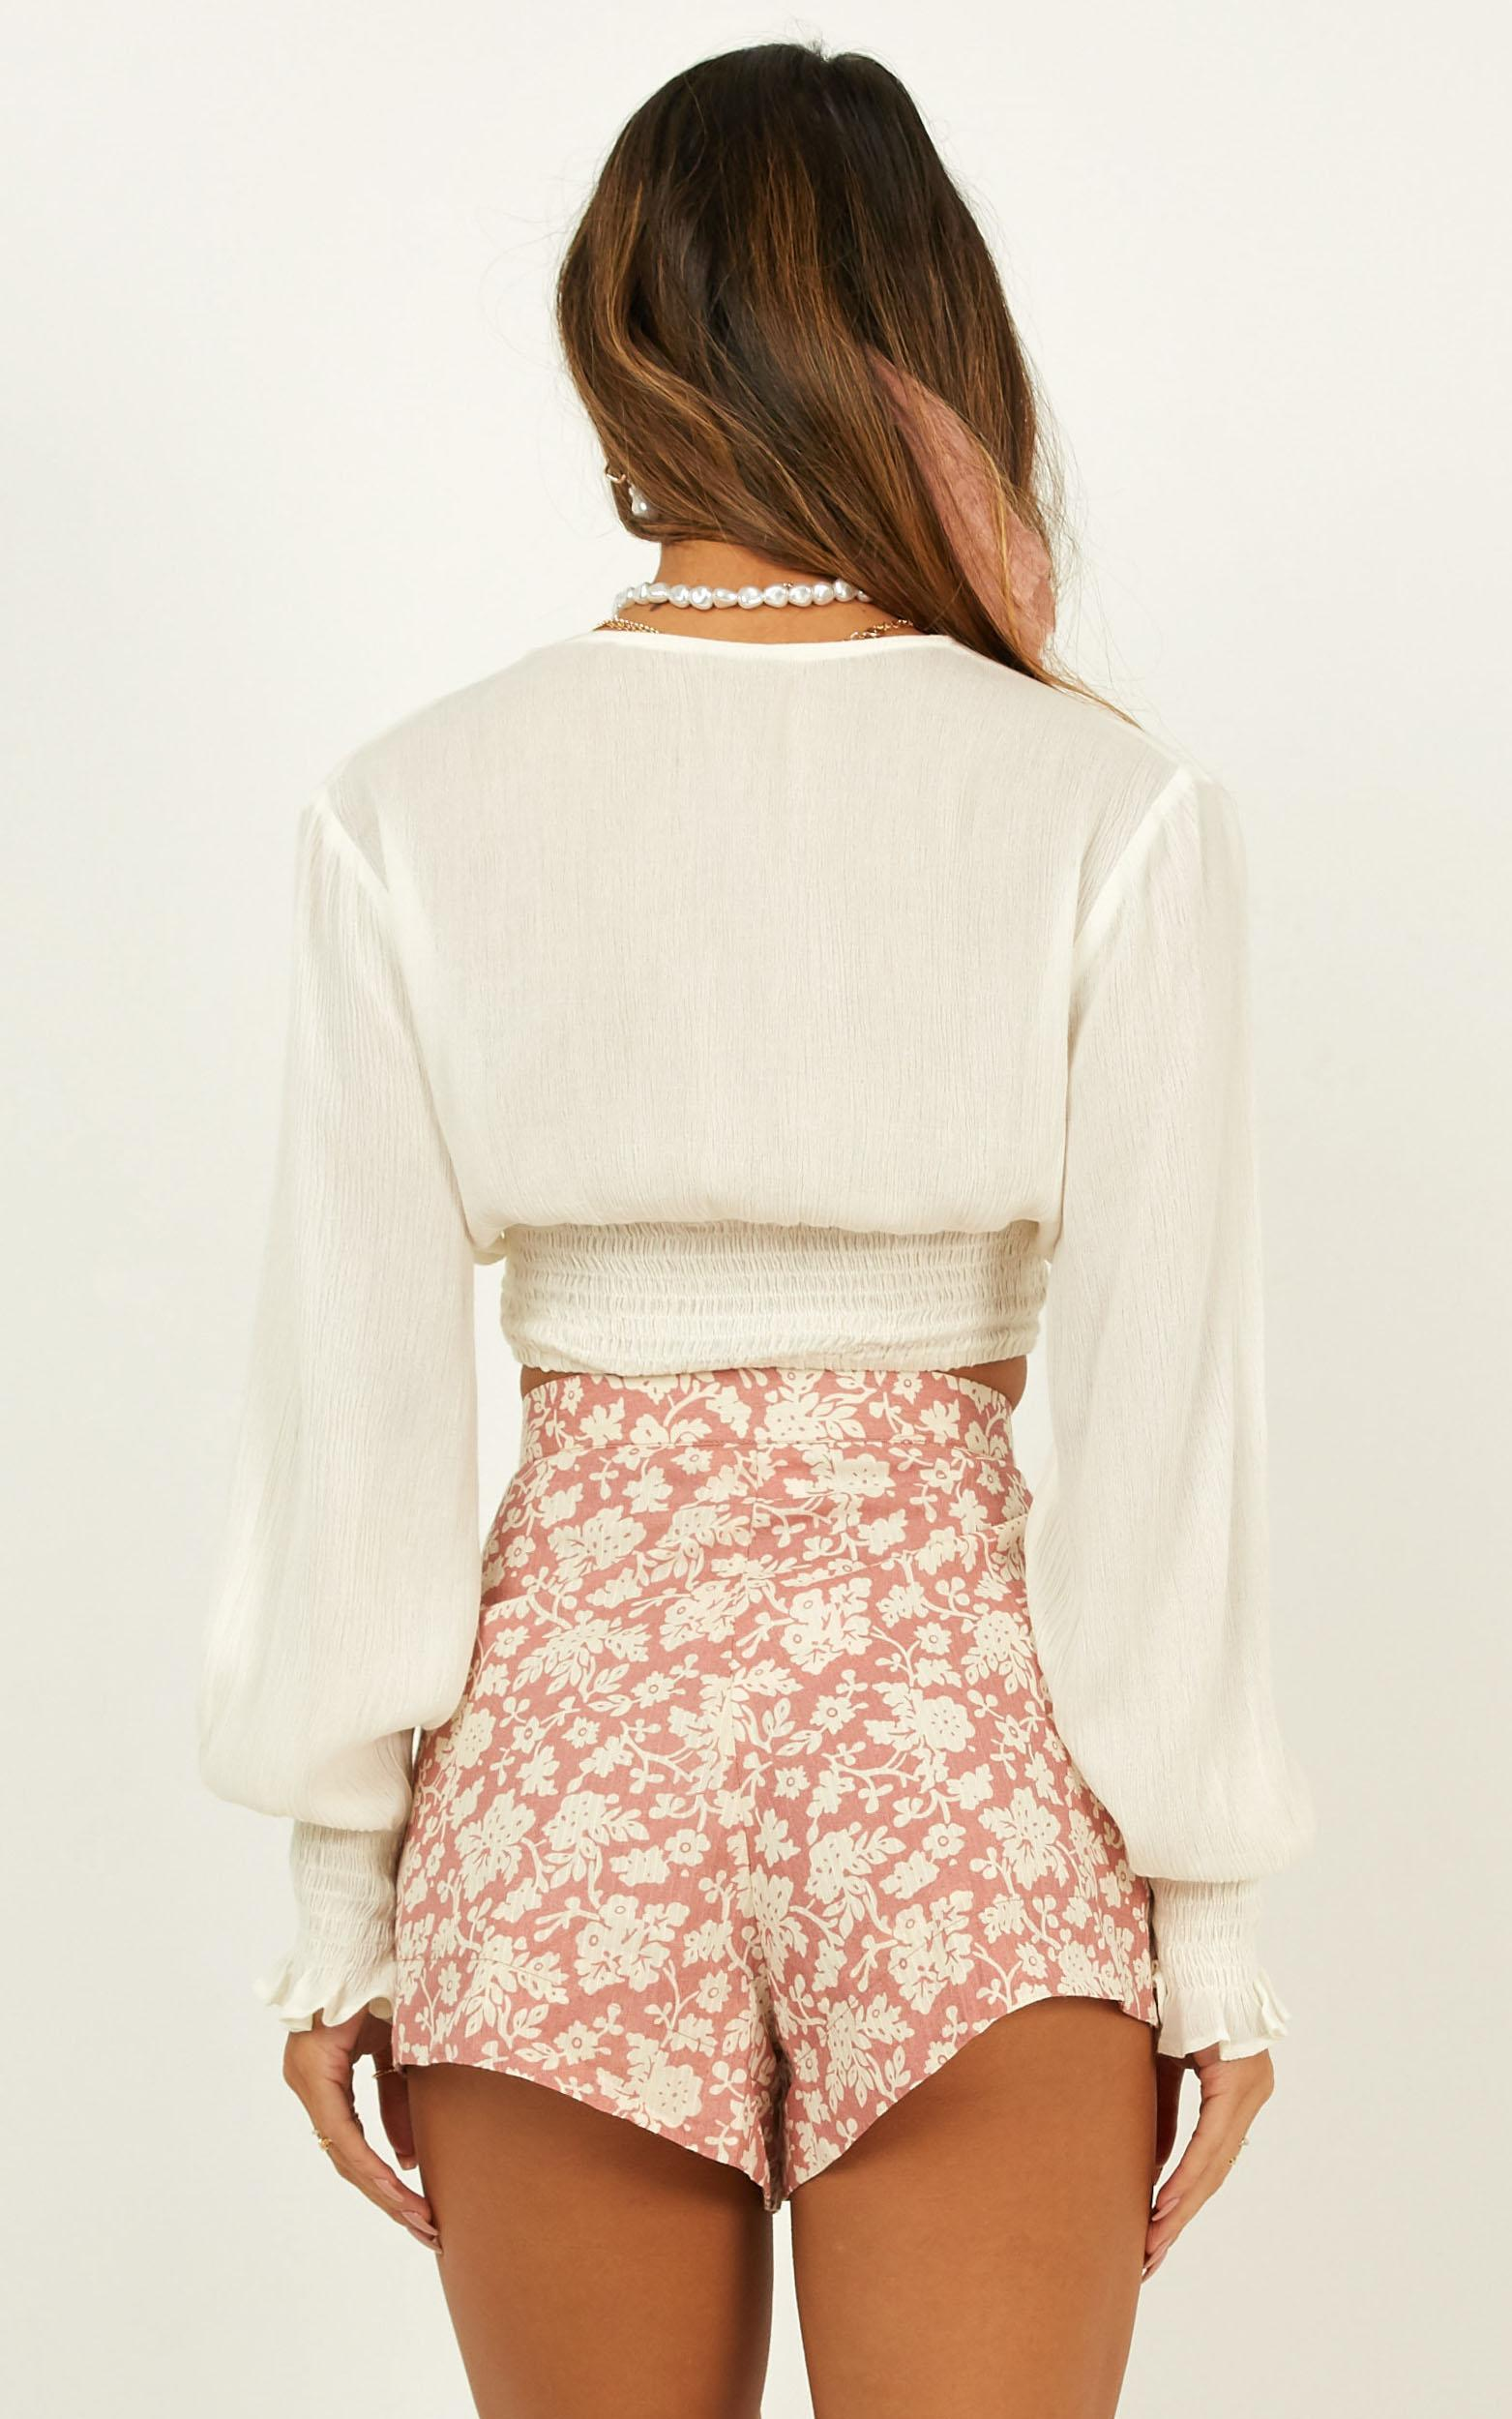 Jewel of the night Shorts in blush floral - 20 (XXXXL), Blush, hi-res image number null